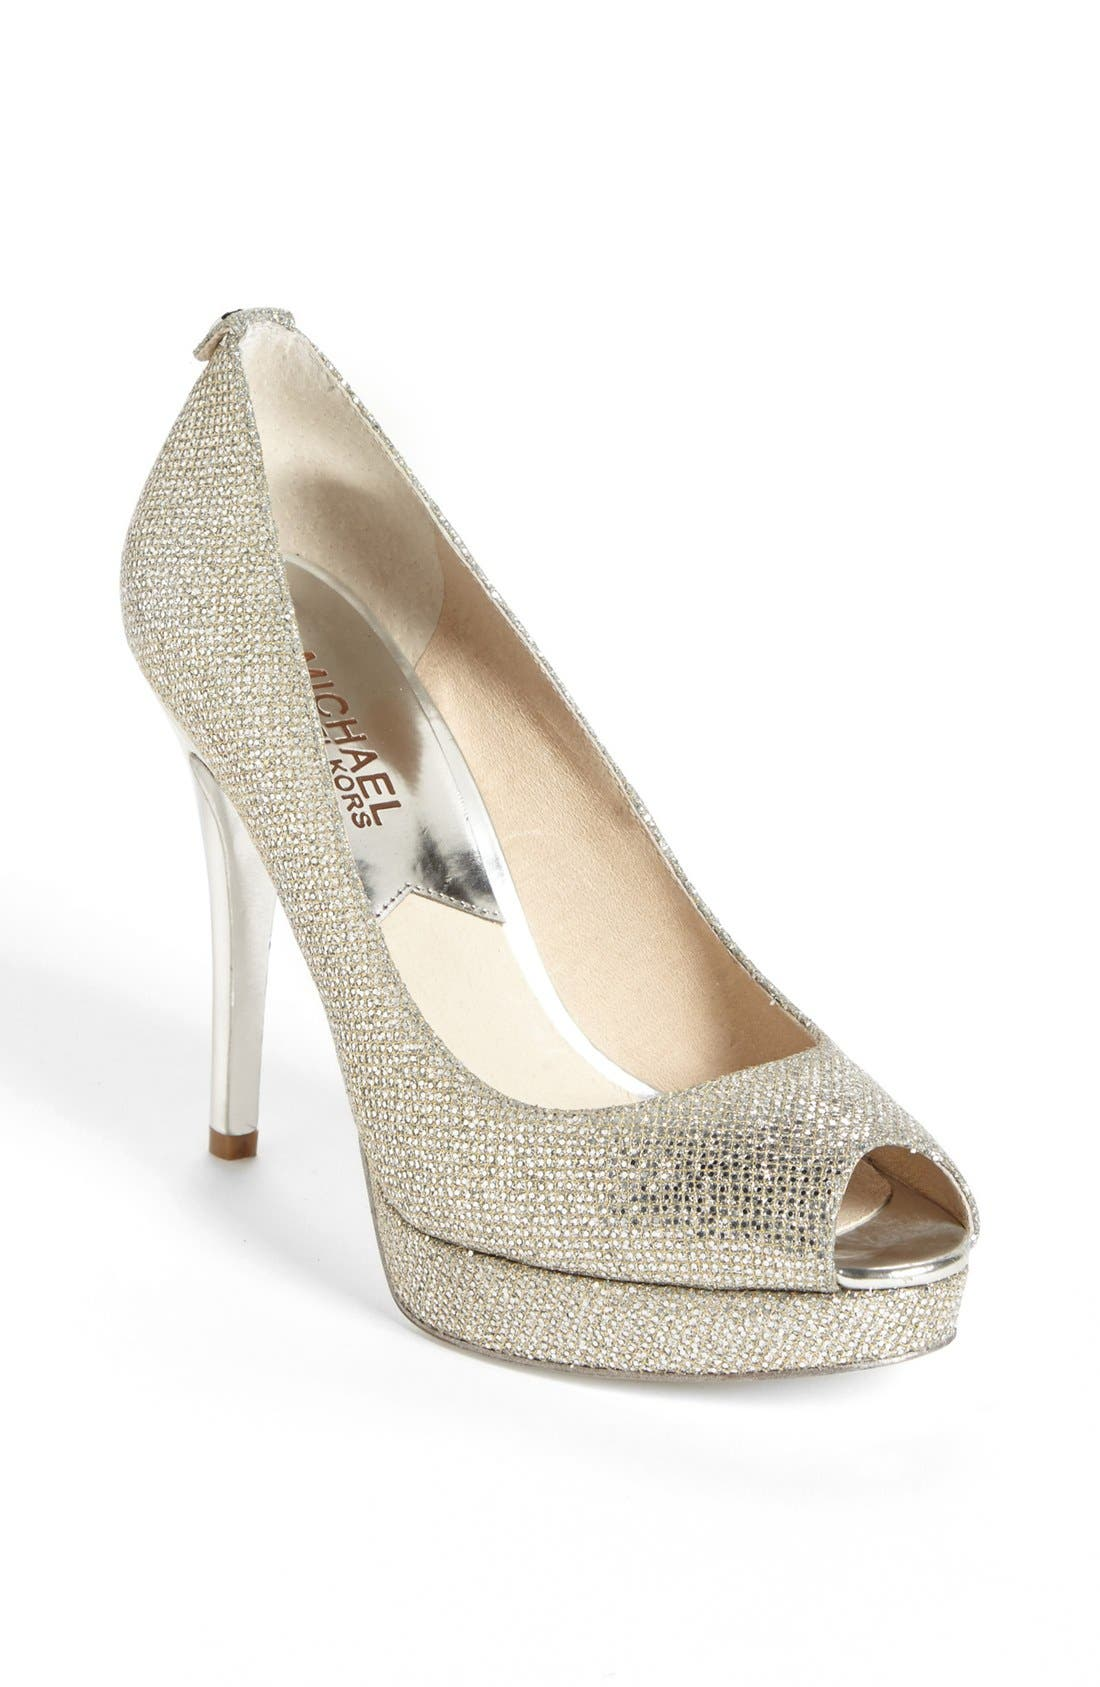 Alternate Image 1 Selected - MICHAEL Michael Kors 'York' Platform Pump